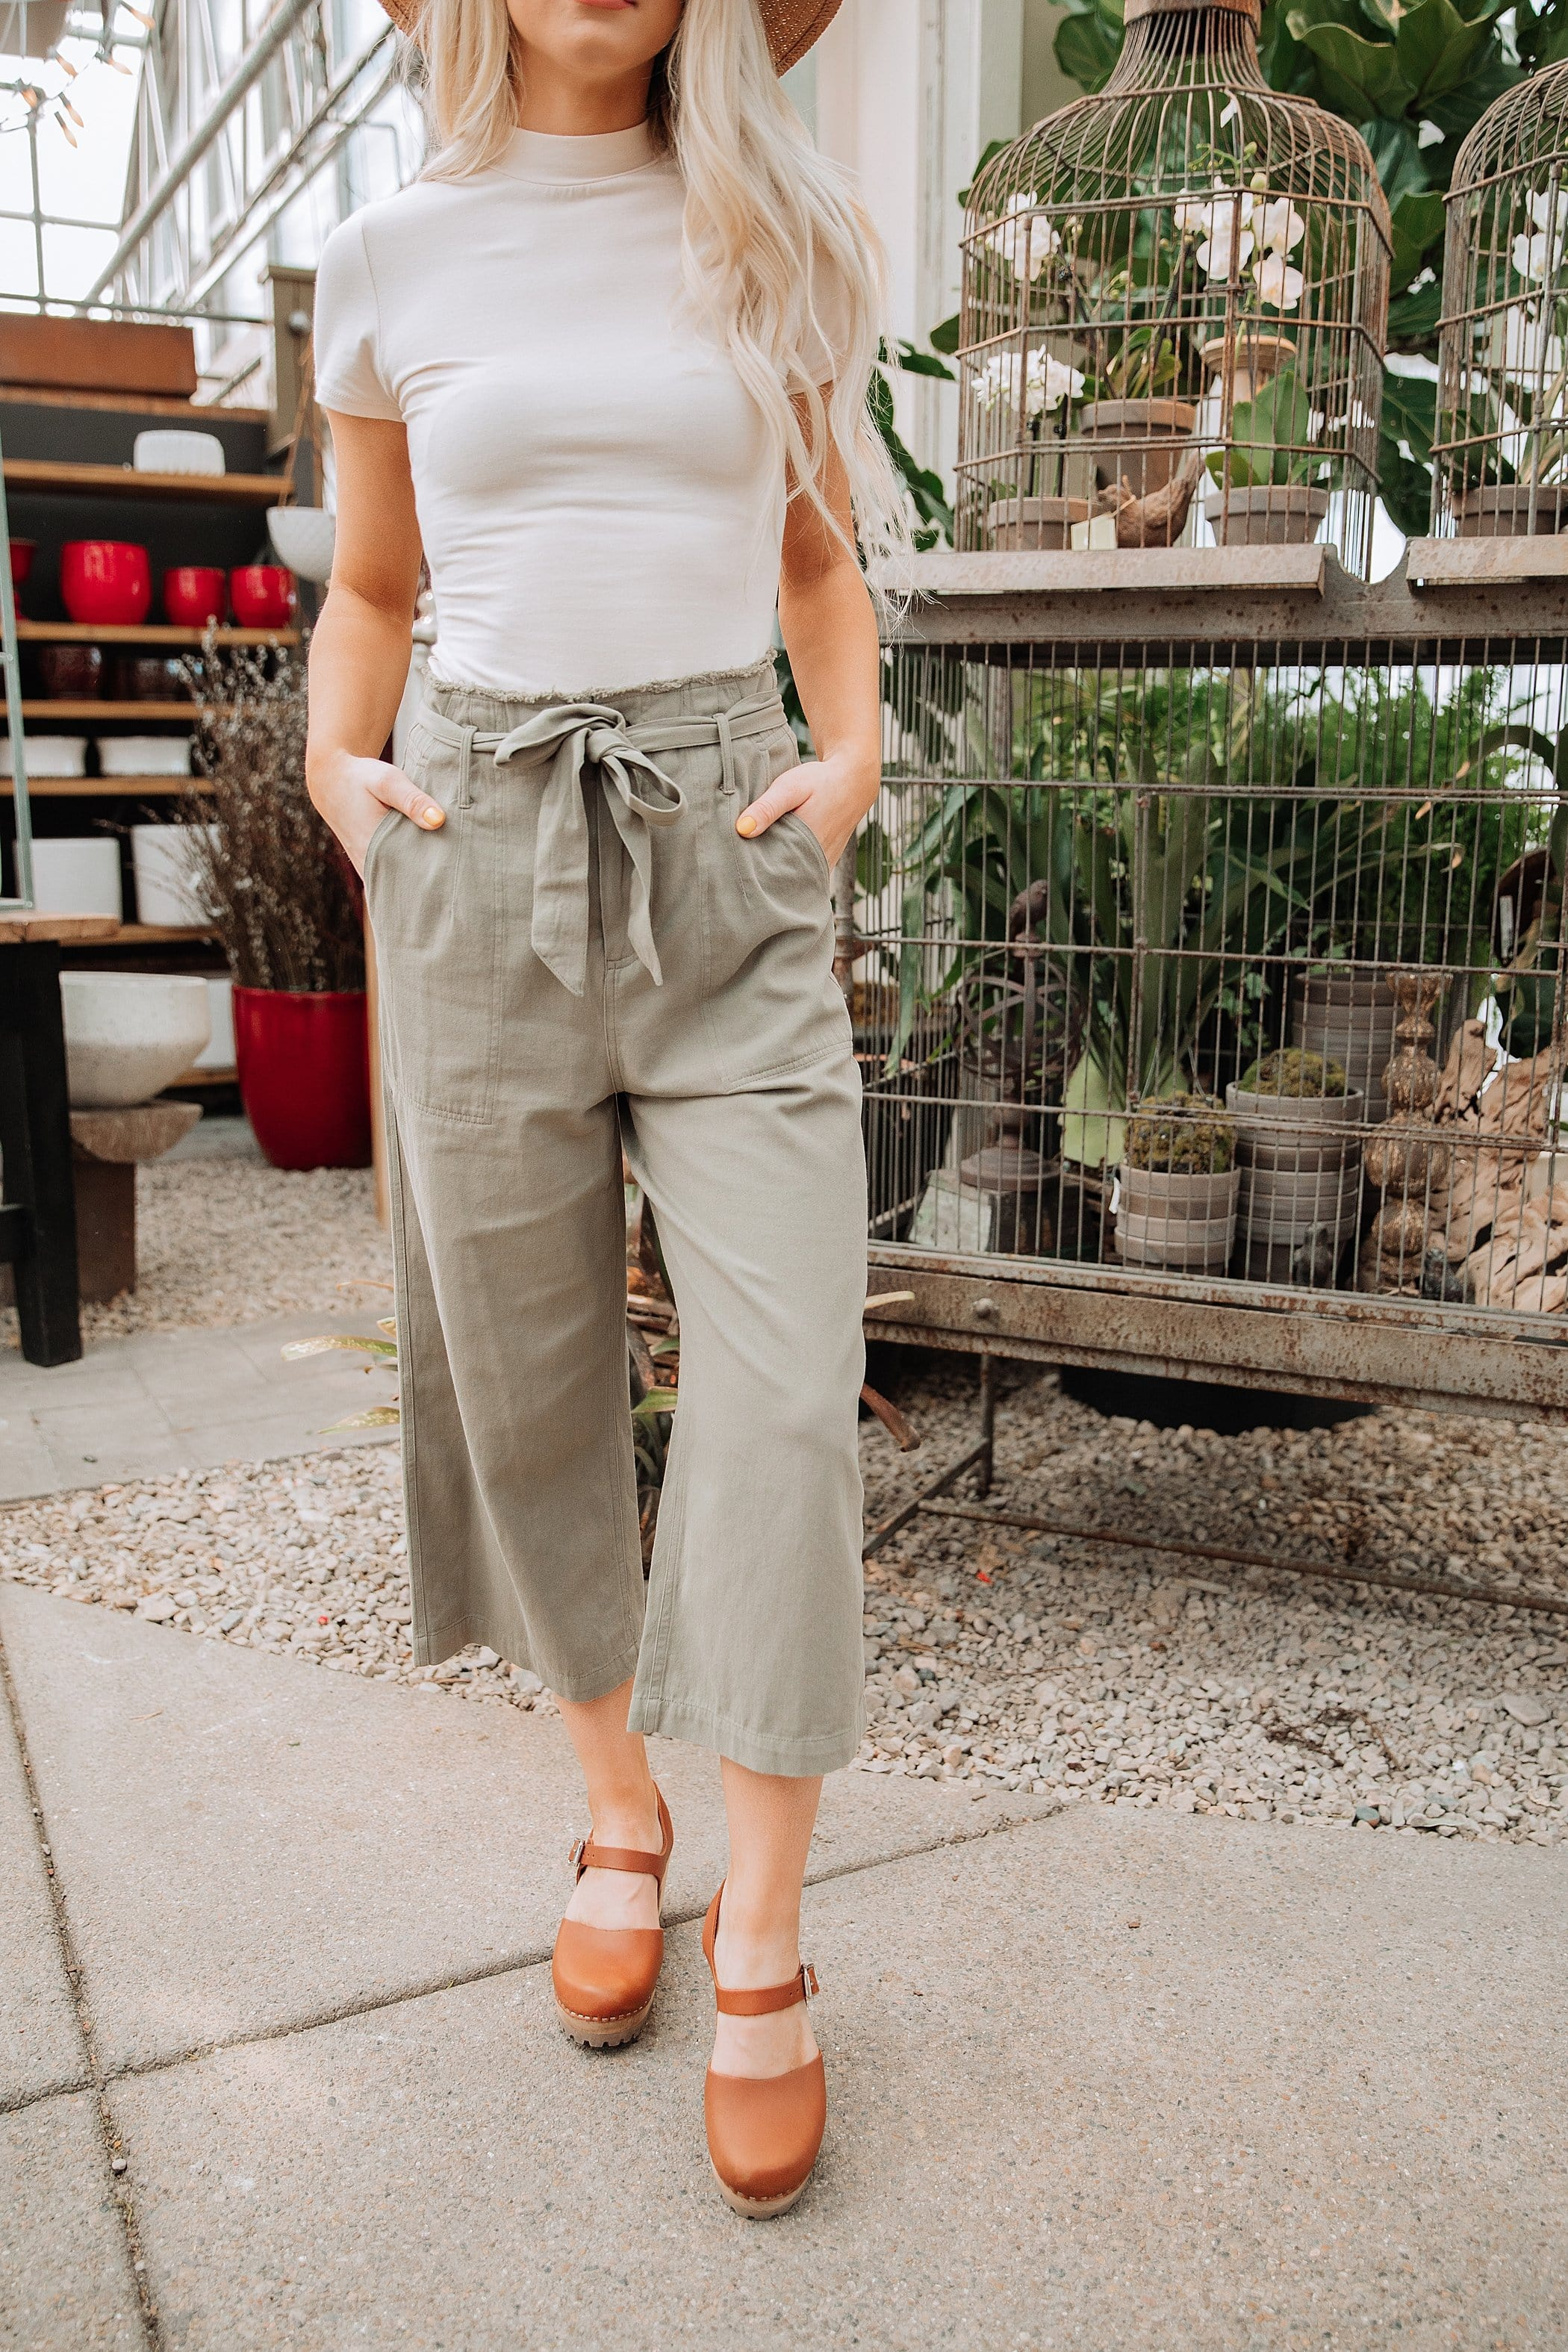 The Hadley Tie Waist Pants in Khaki and Olive